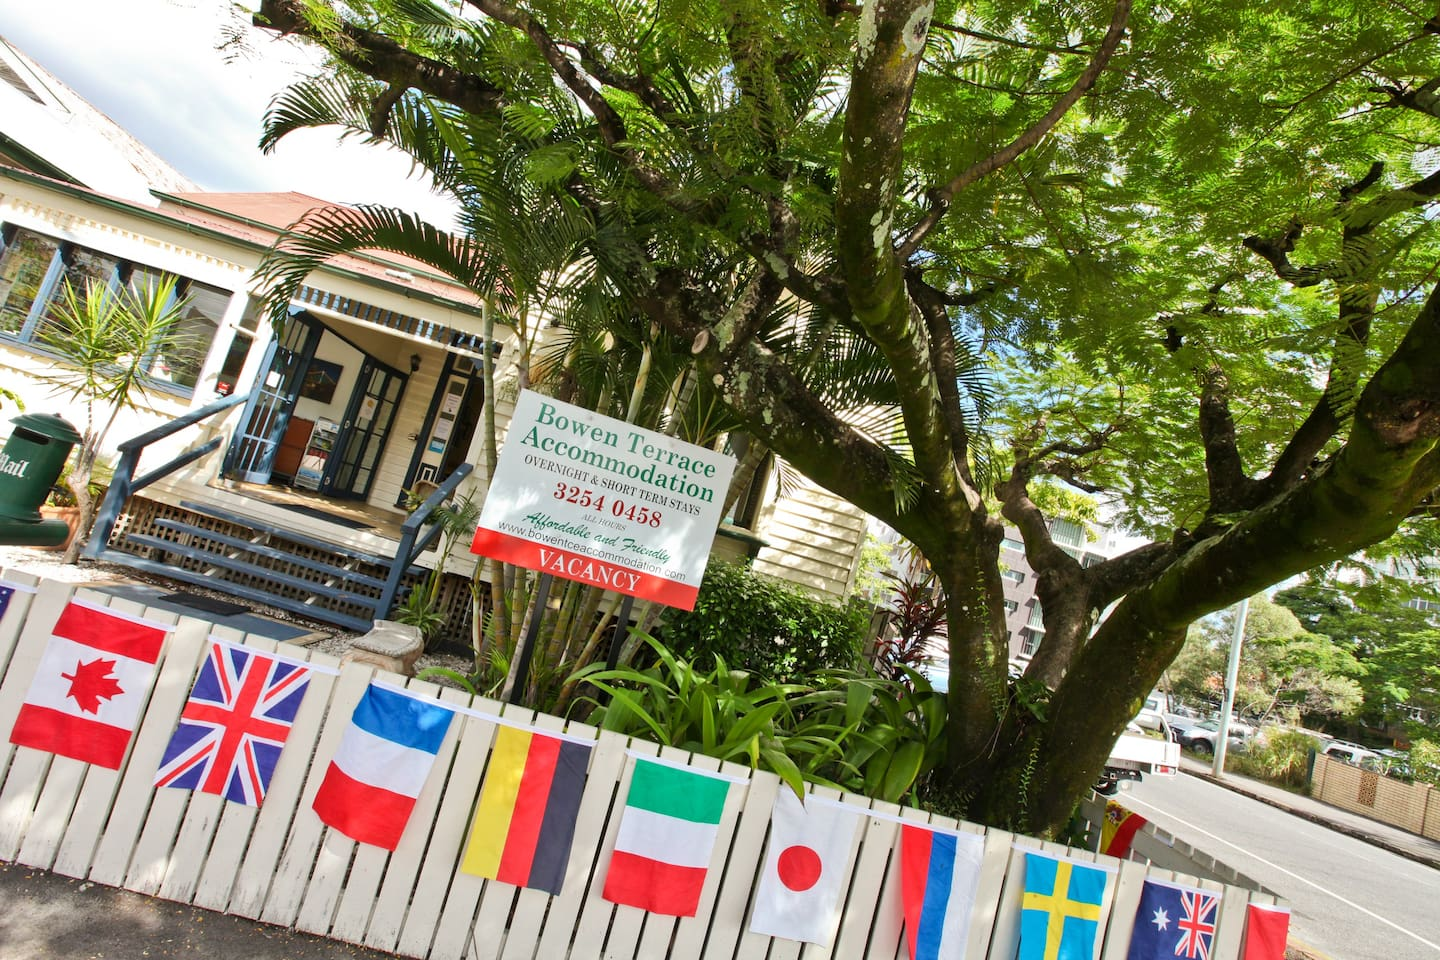 Our Queenslander is nearly 100 years old and offers a great insight into Brisbane's history.